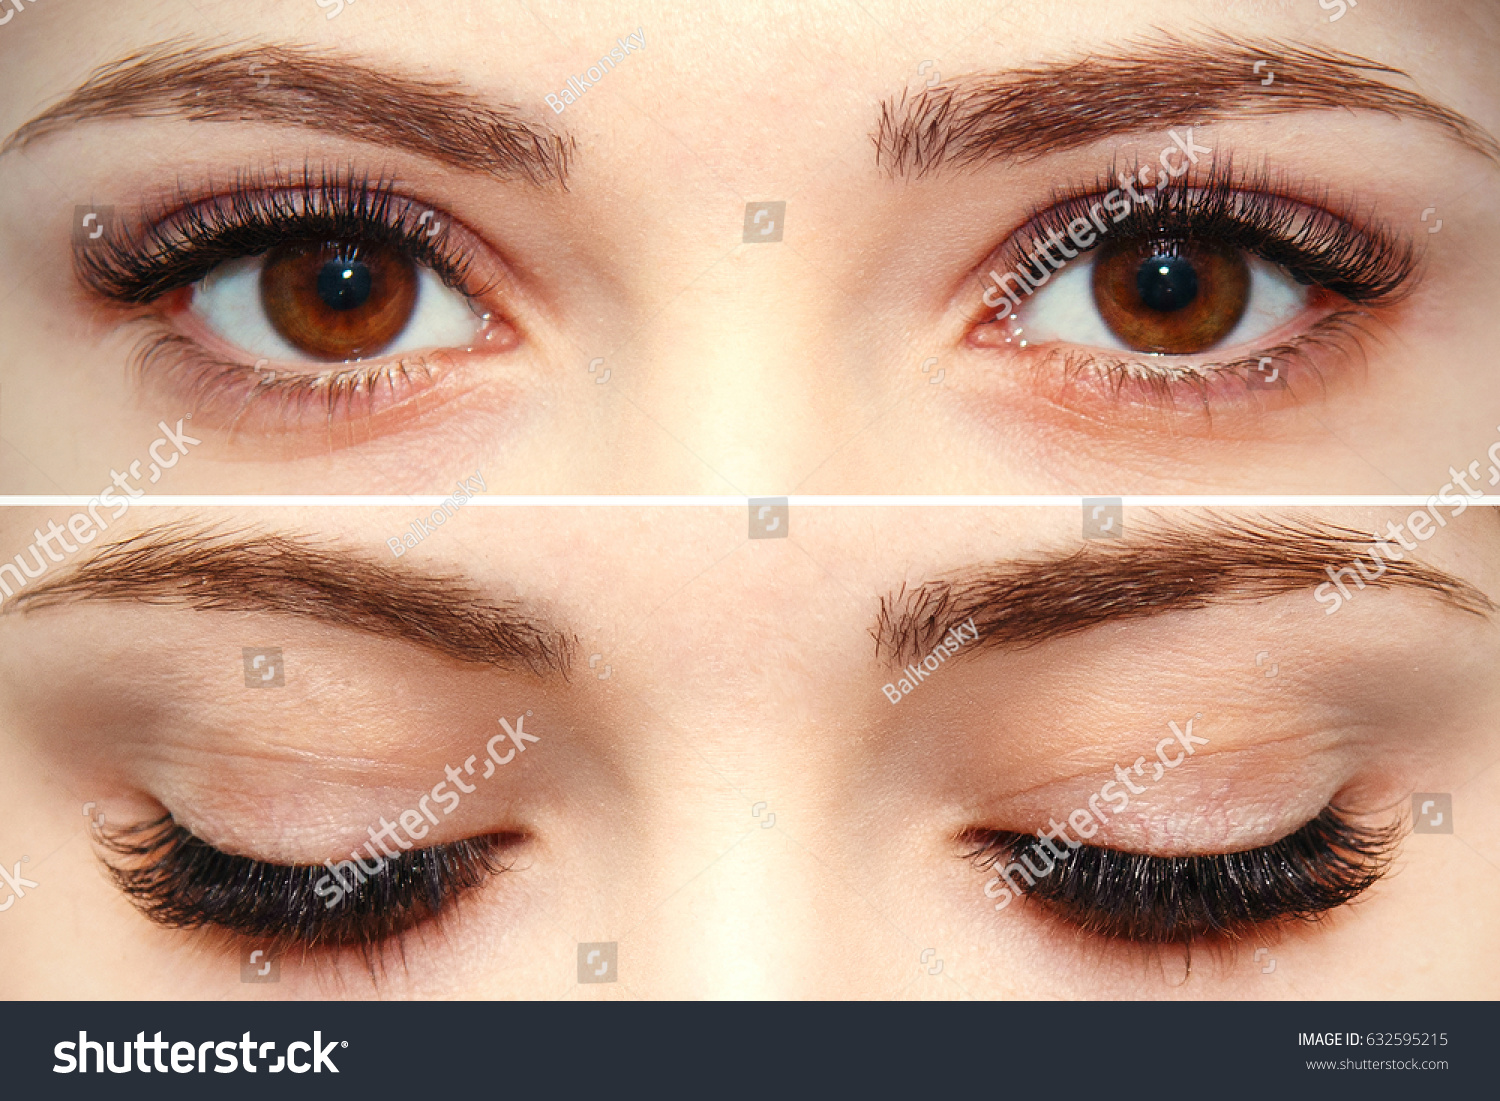 Eye Makeup Beautiful Eyes Makeup Holiday Stockfoto Jetzt Bearbeiten